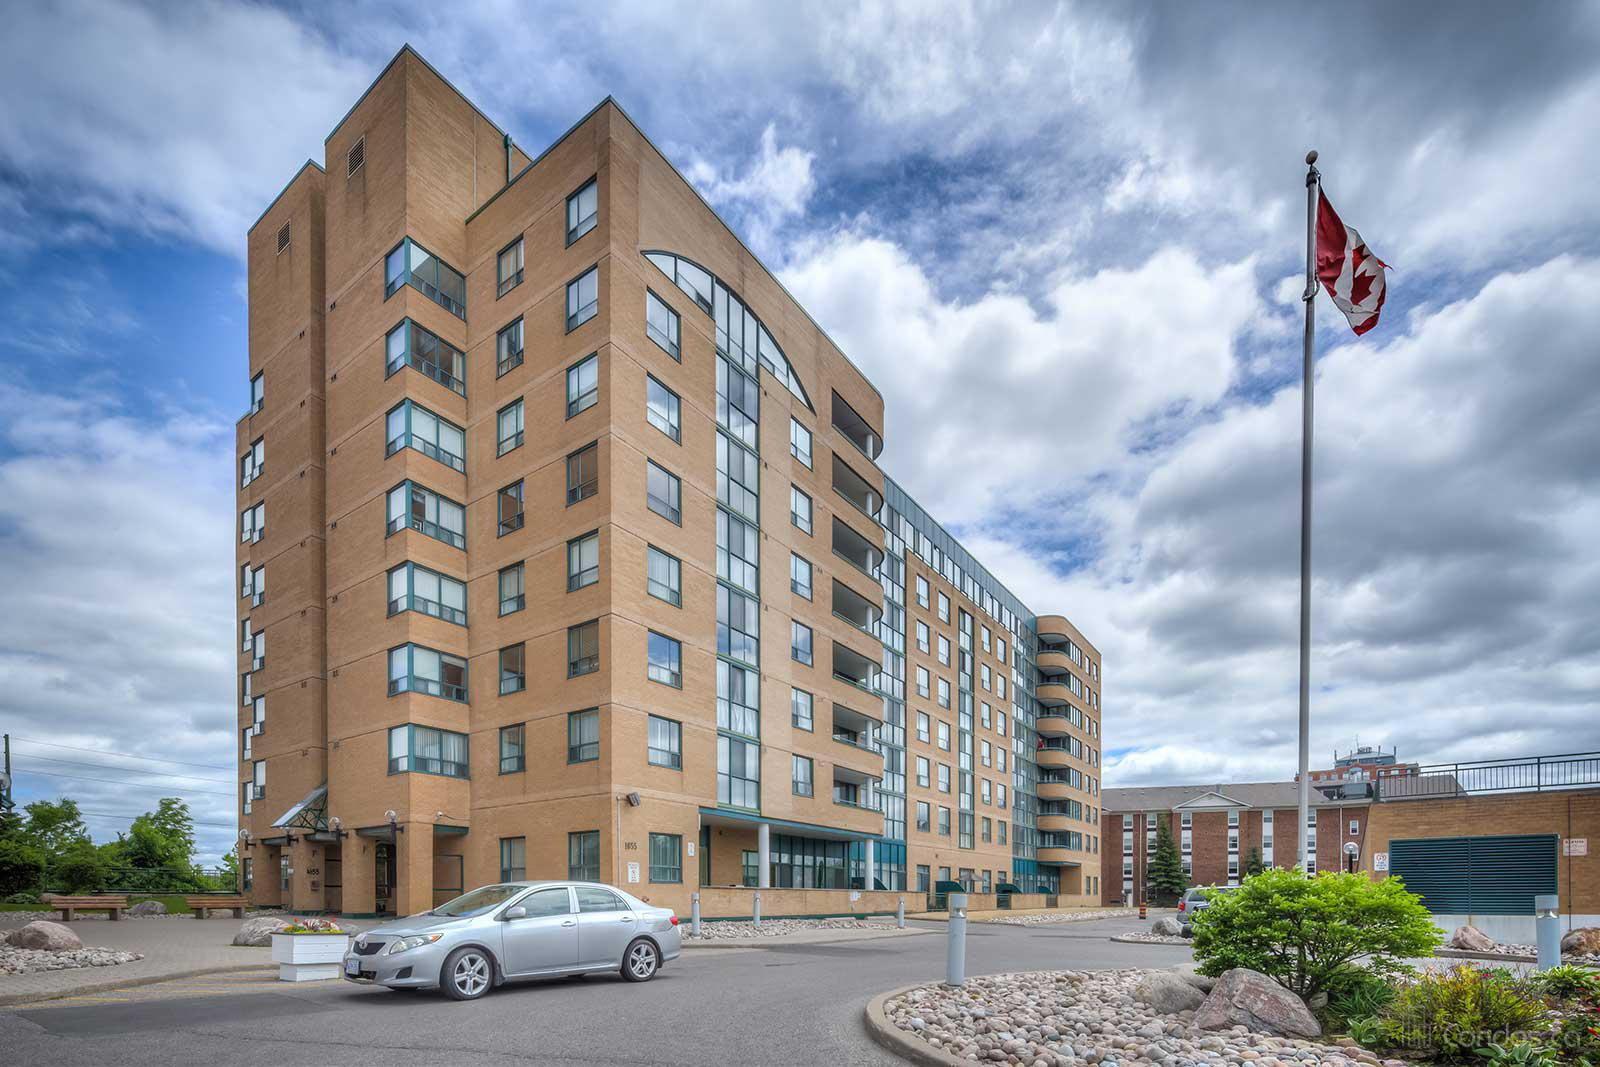 Emerald Point at 1655 Pickering Pkwy, Pickering 1